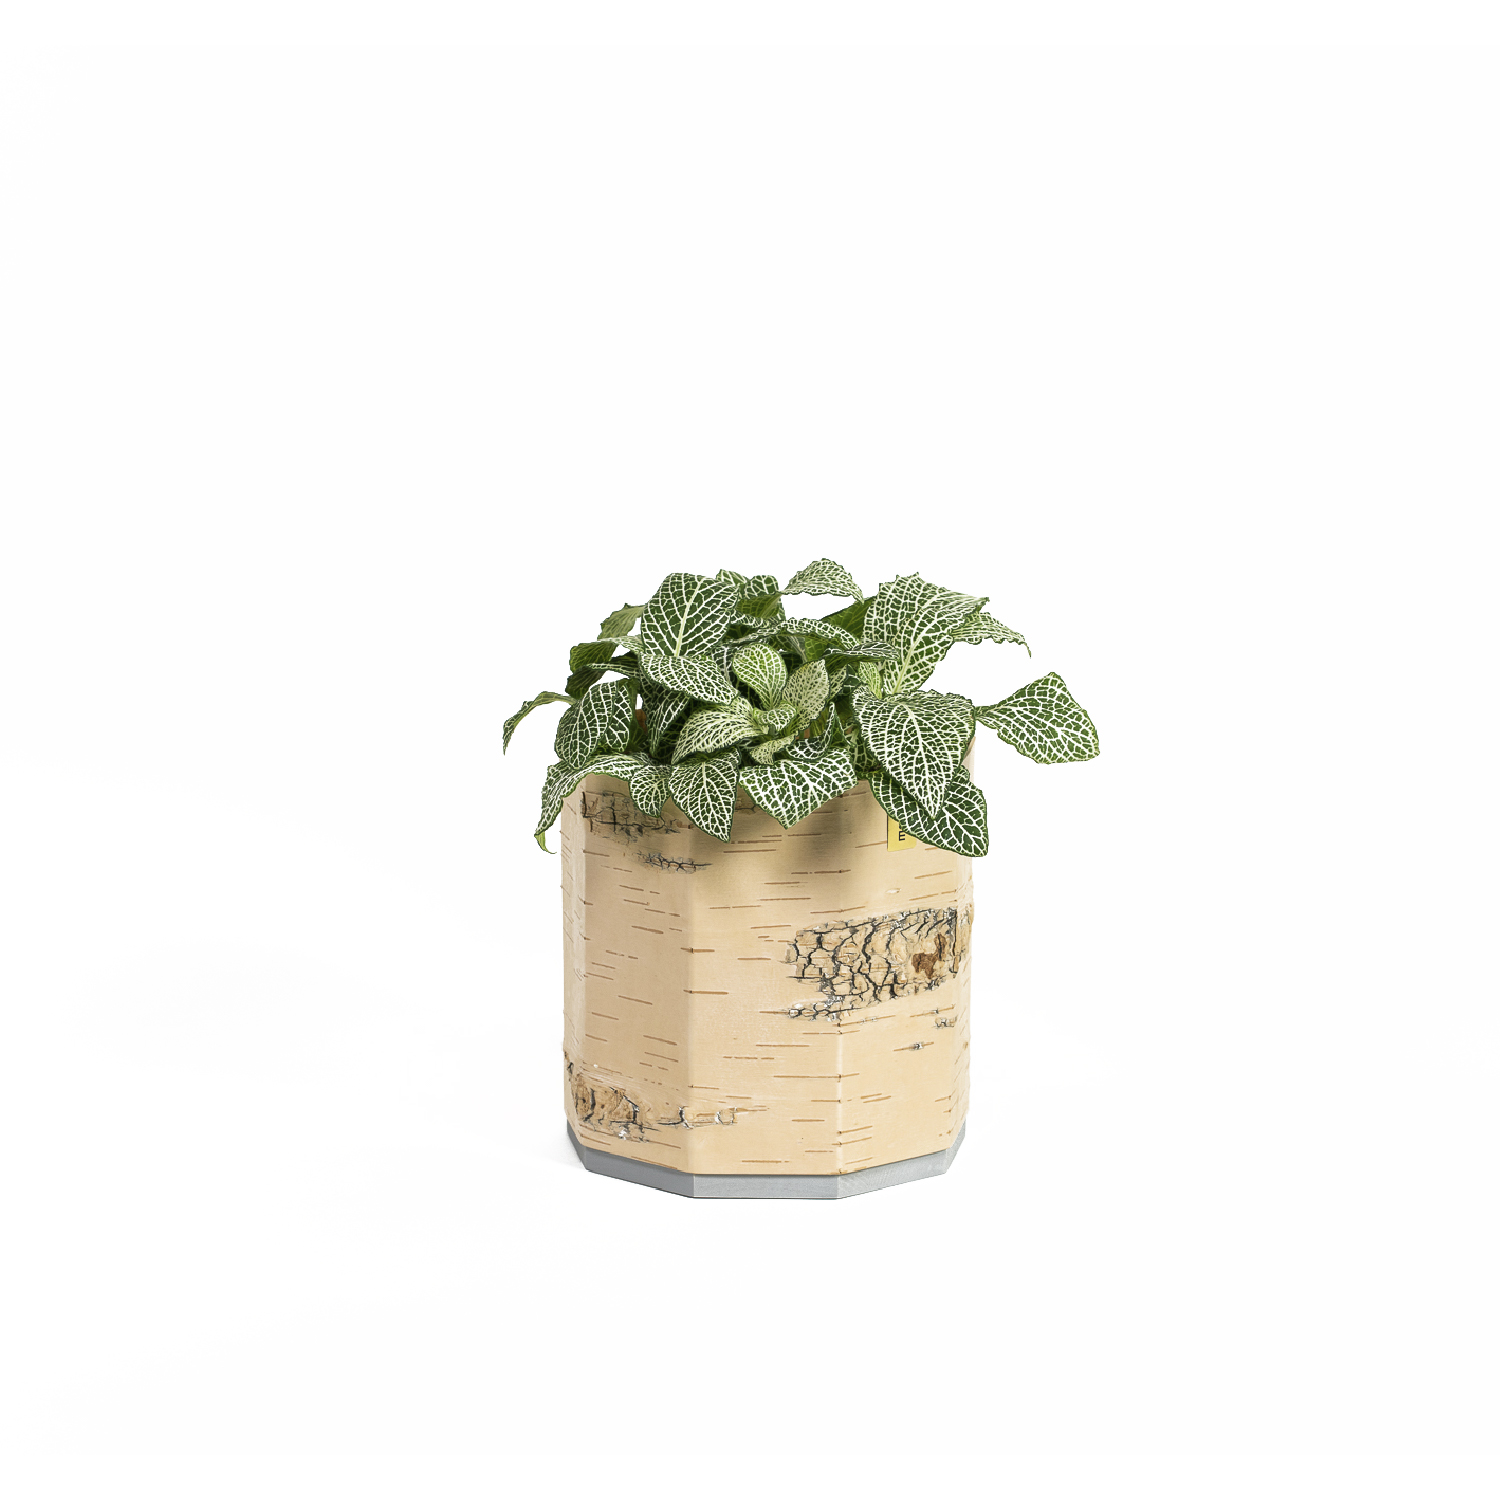 Tara Planter - In our new planter series Tara your green favourites and beauties find a home in a familiar natural environment. The warm, bright surface of birch bark accentuates the rugged foliage of houseplants or the lush green of kitchen herbs to make them shine. These lightweight Planters, made from 100% natural material and make beautiful centrepieces. They can also be arranged wonderfully in rows on a windowsill.  The Planters are available in two sizes and are suitable for many common herbs and pot plants. The integrated glass insert collects excess water.  Height 14 cm | ø 13,5 cm  Suitable for plant pots up to size: Height 11 cm | ø 12,5 cm  Birch bark, glass insert, pine wood (surface: water based wood stain, bees wax) | Matter of Stuff